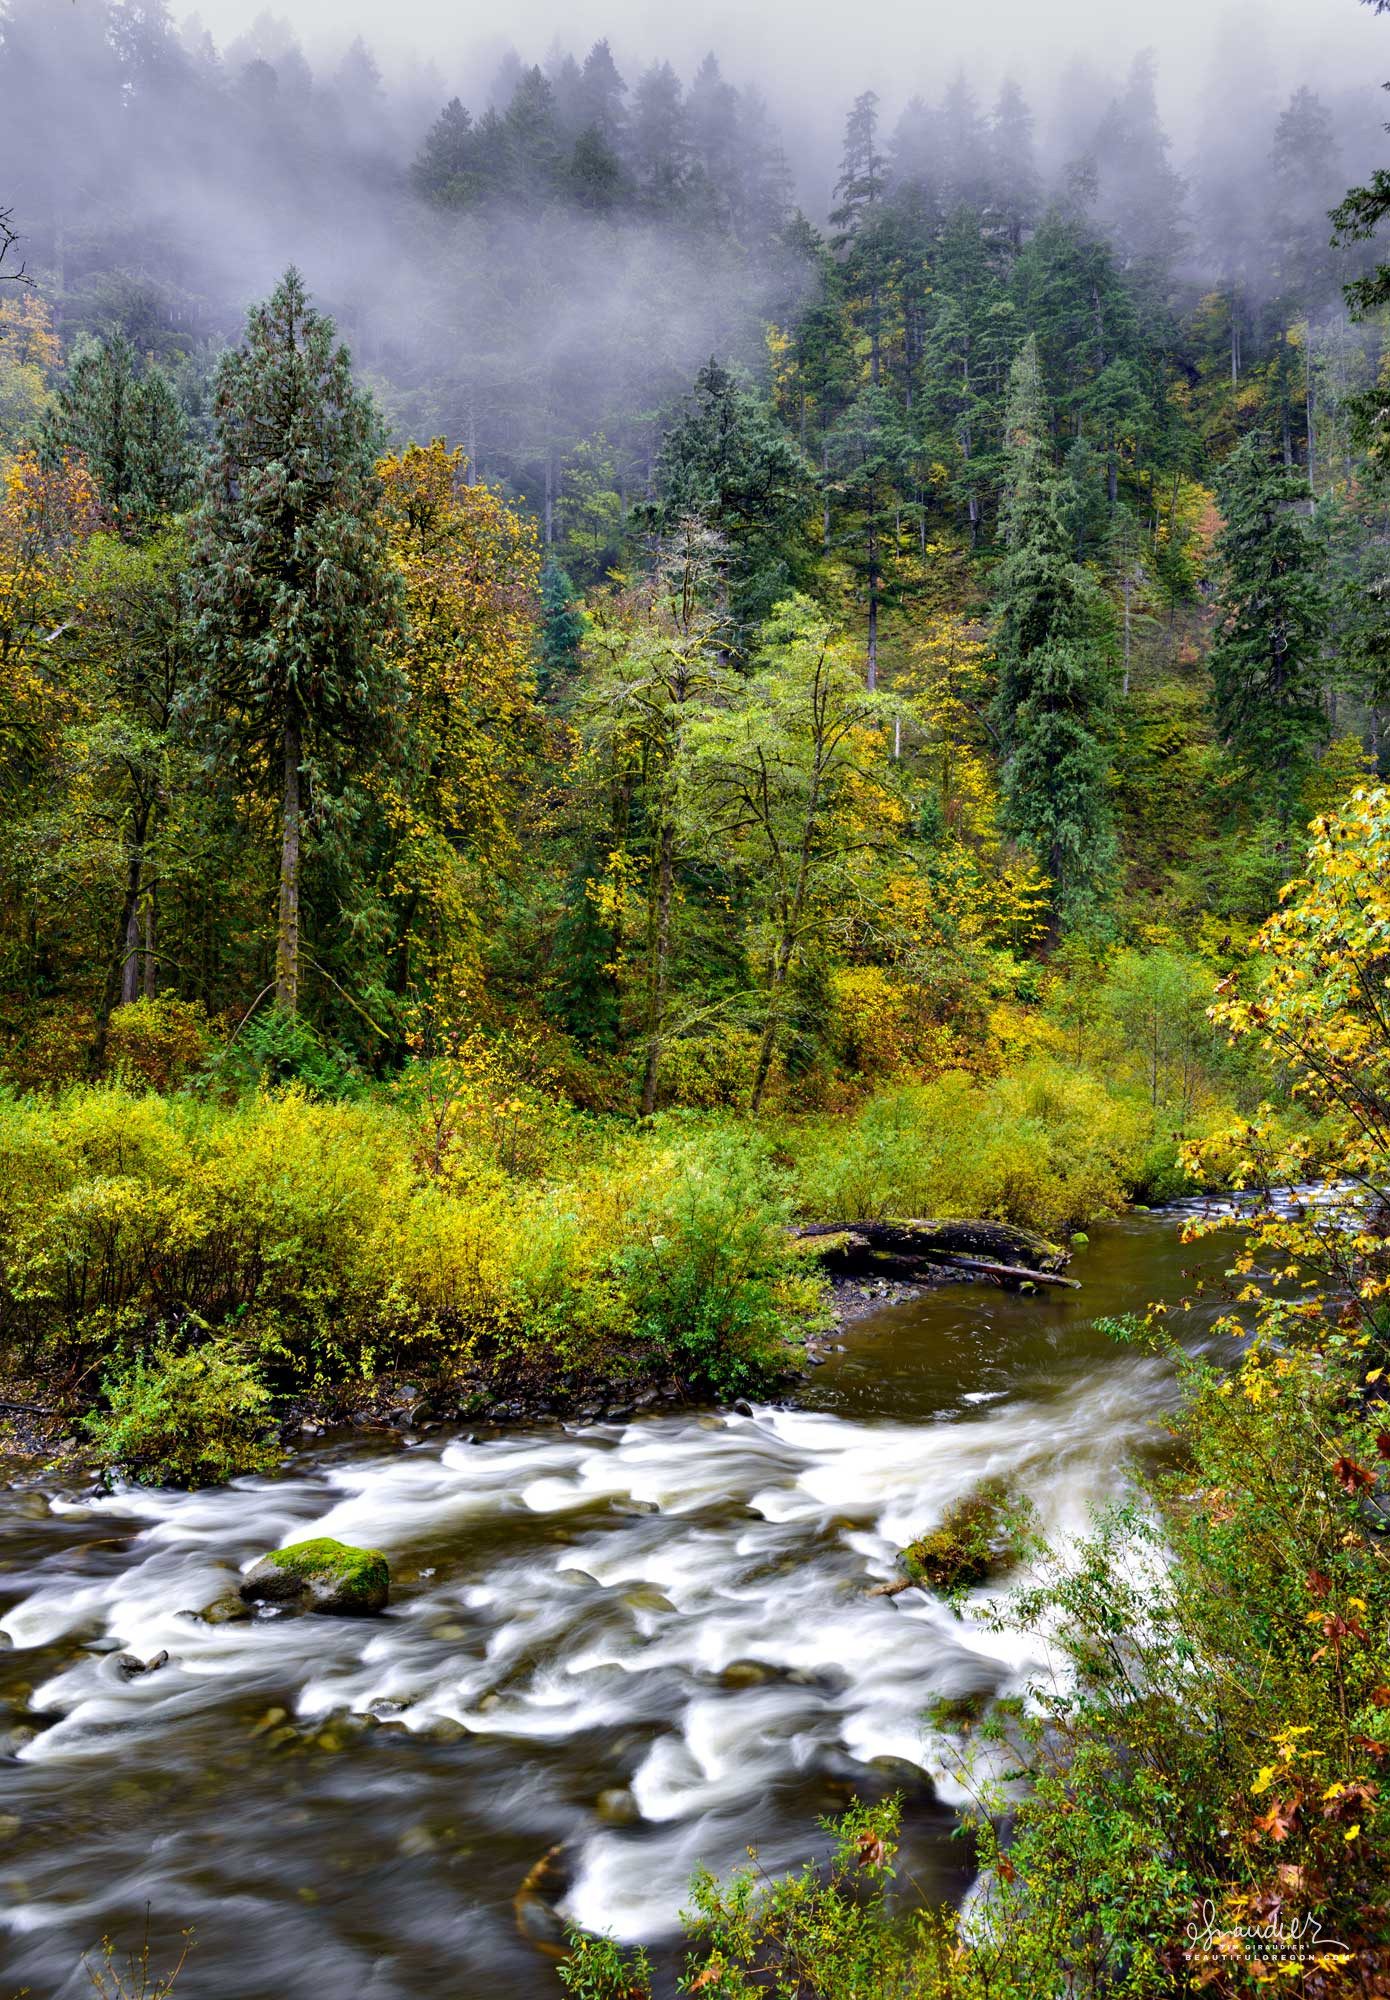 Eagle Creek flows through an autumn forest. Mount Hood National Forest, Columbia River Gorge, Oregon.